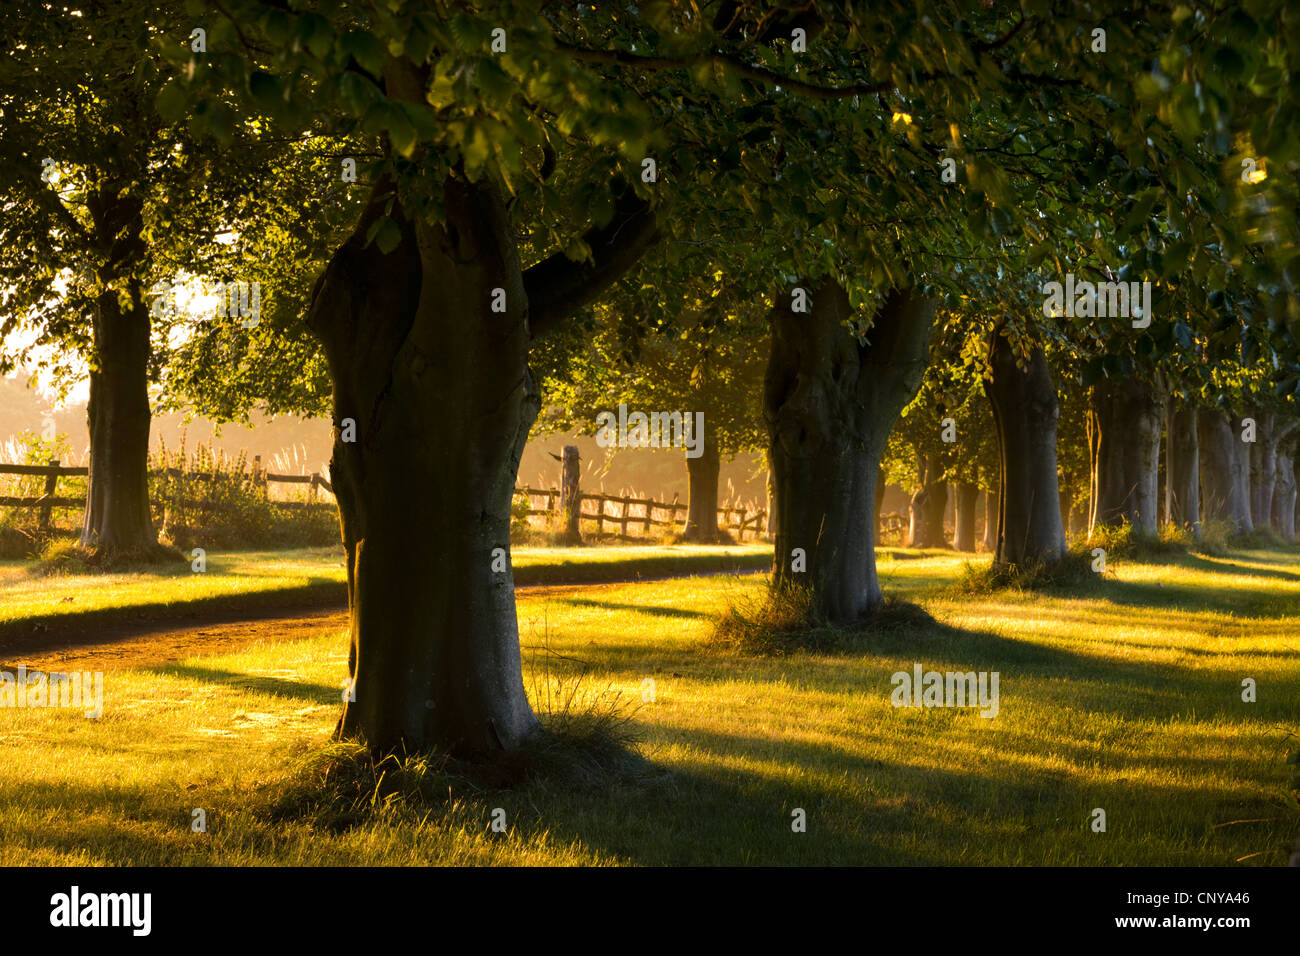 Golden morning sunlight illuminating an avenue of trees in the Cotswolds, Gloucestershire, England. Summer 2011. Stock Photo